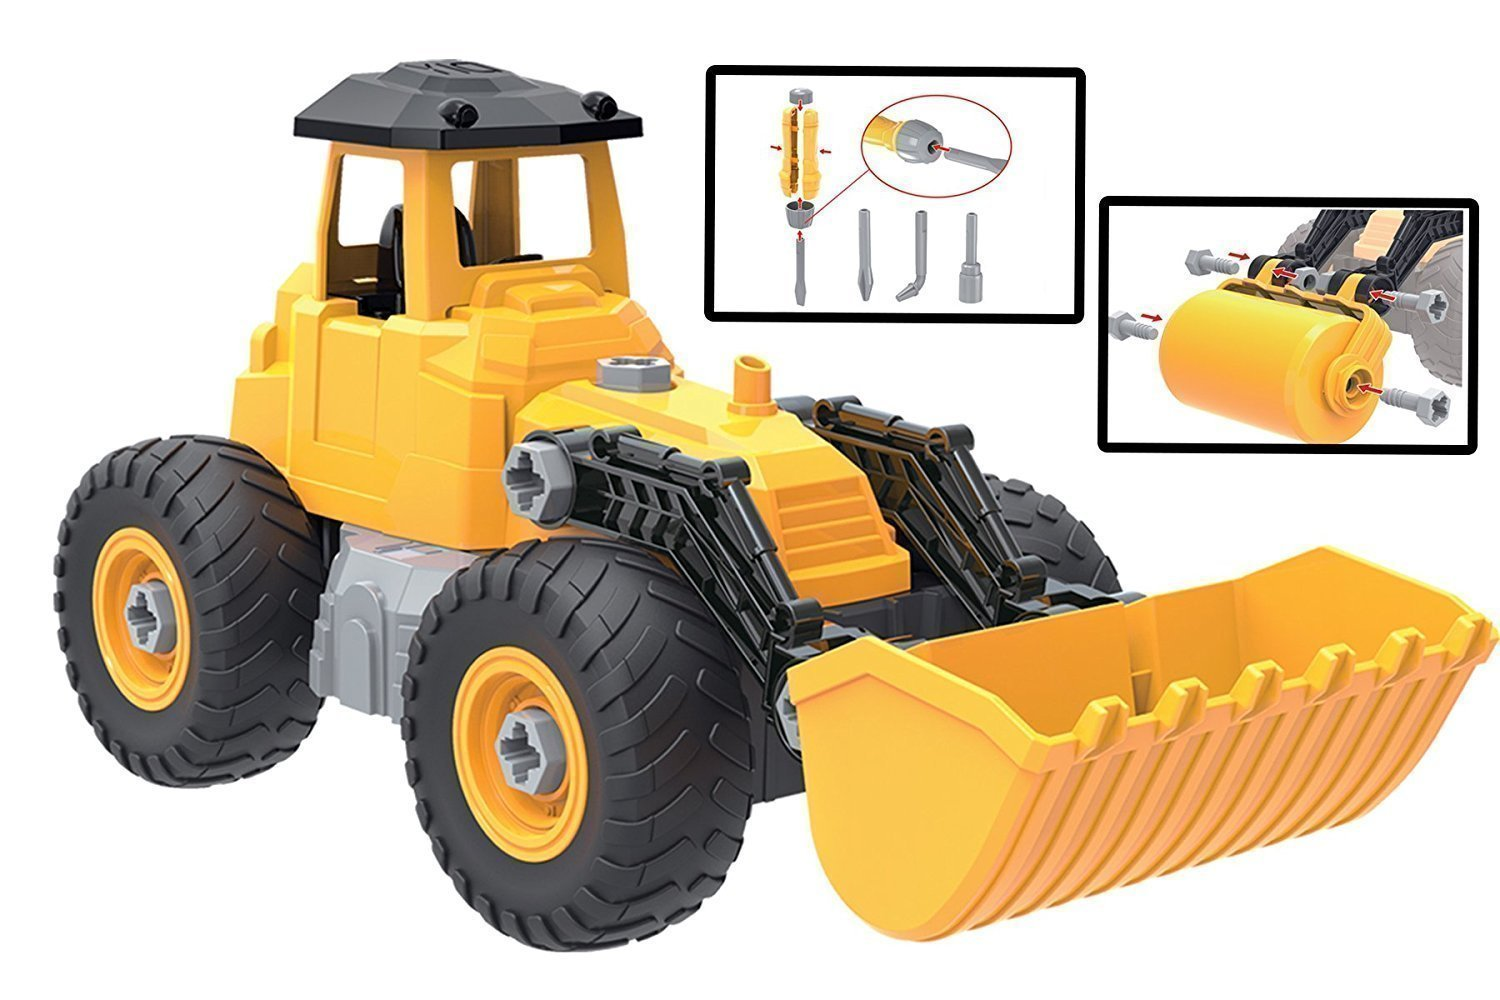 kidwerkz toy truck bulldozer review kids toys news